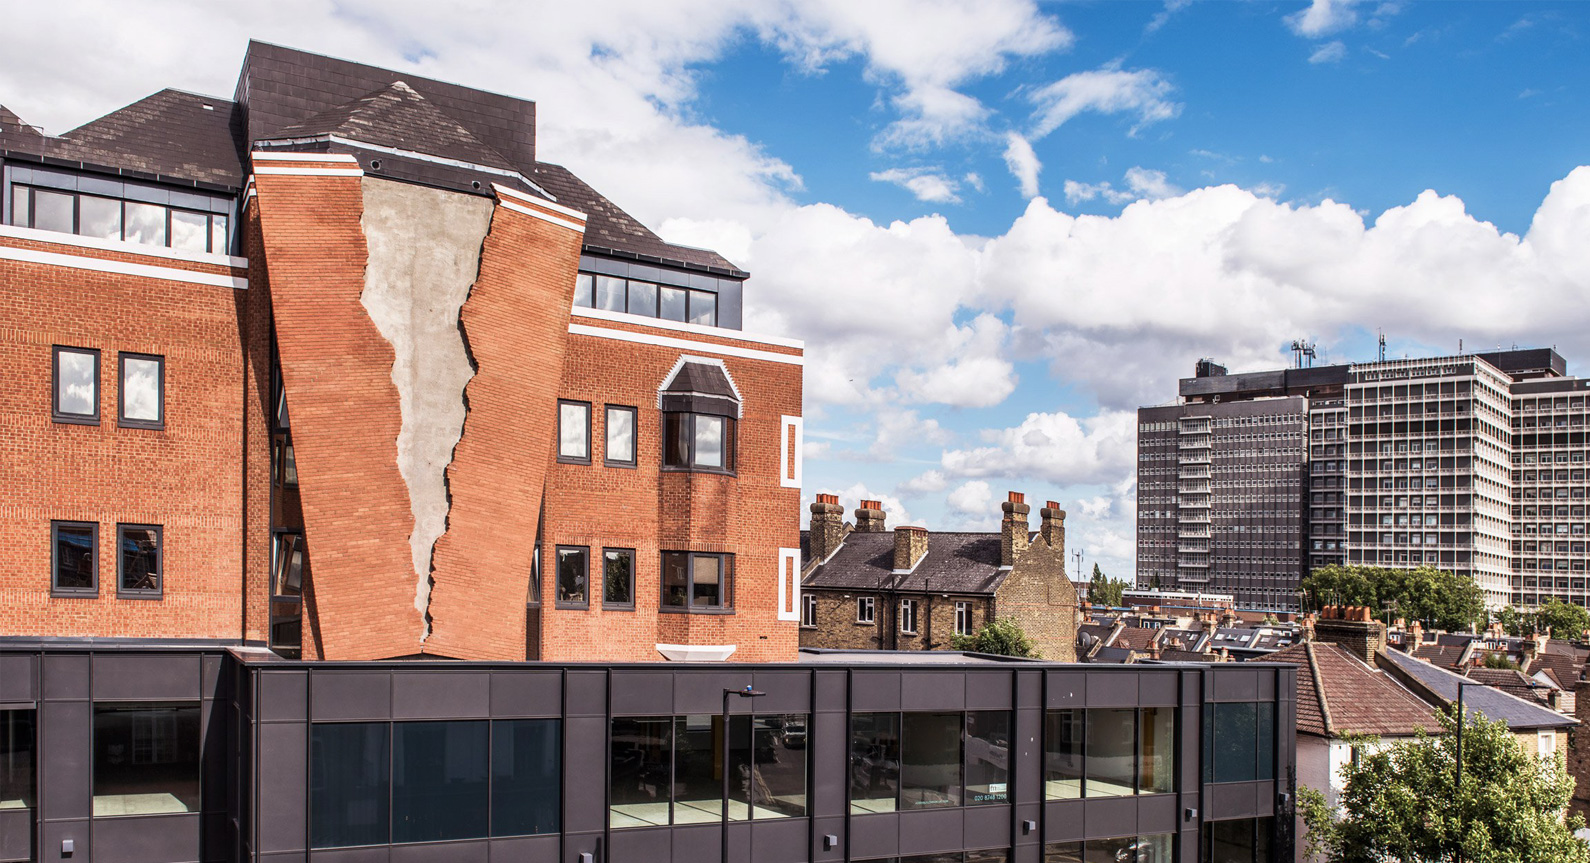 Alex Chinneck Creates A Giant Crack In The Brick Façade Of A London Building